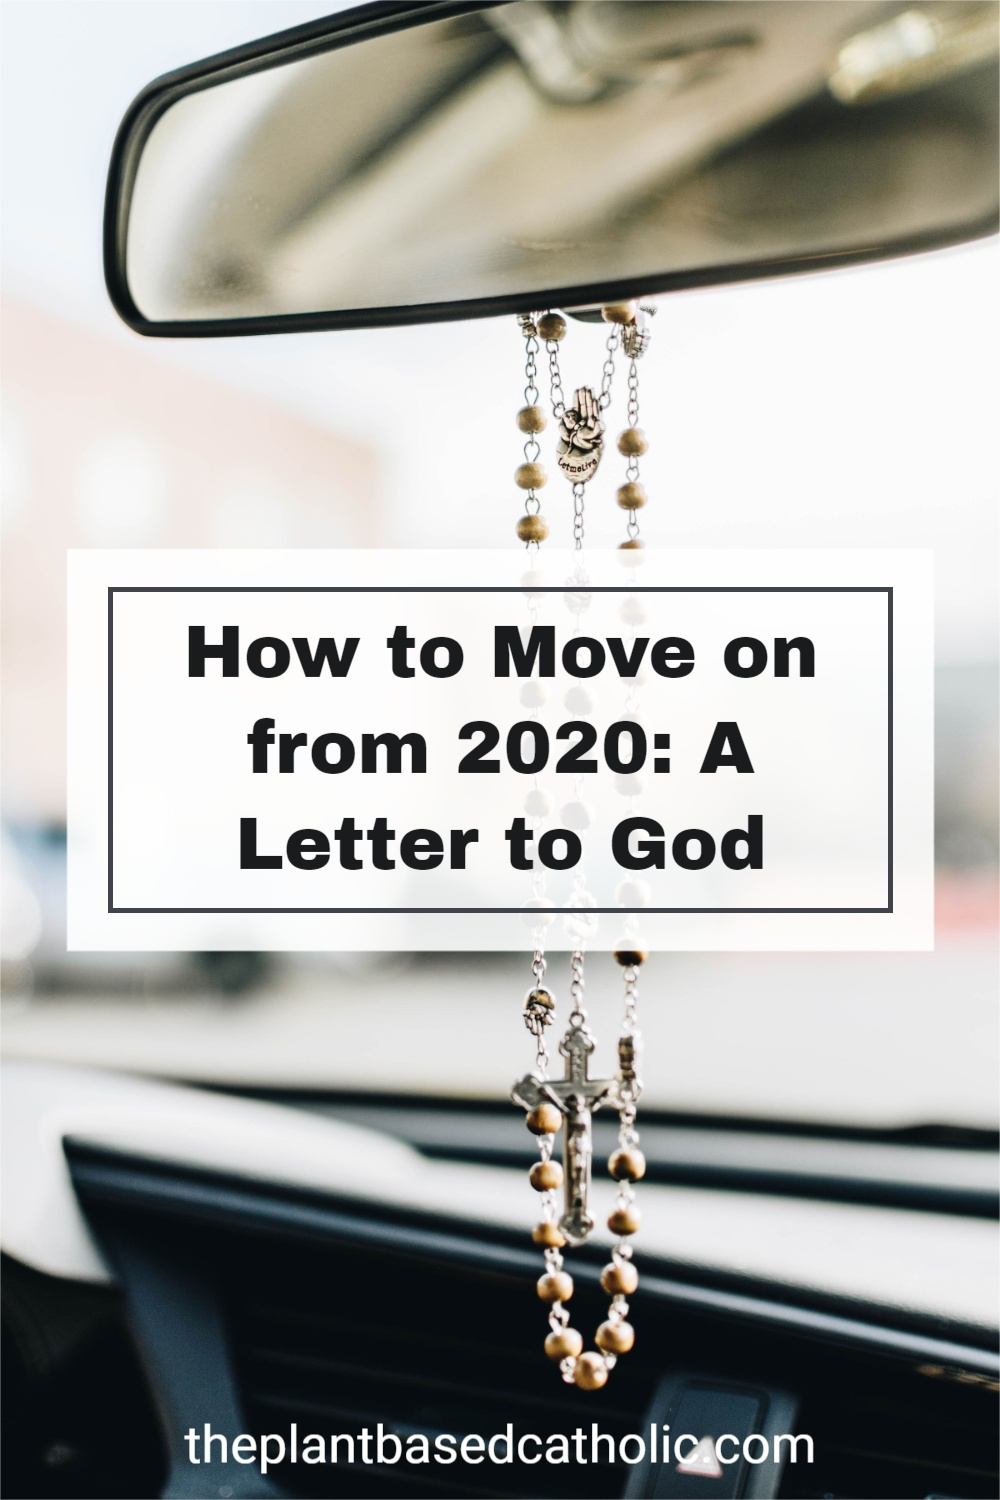 How to Move on from 2020 A Letter to God Pinterest Graphic